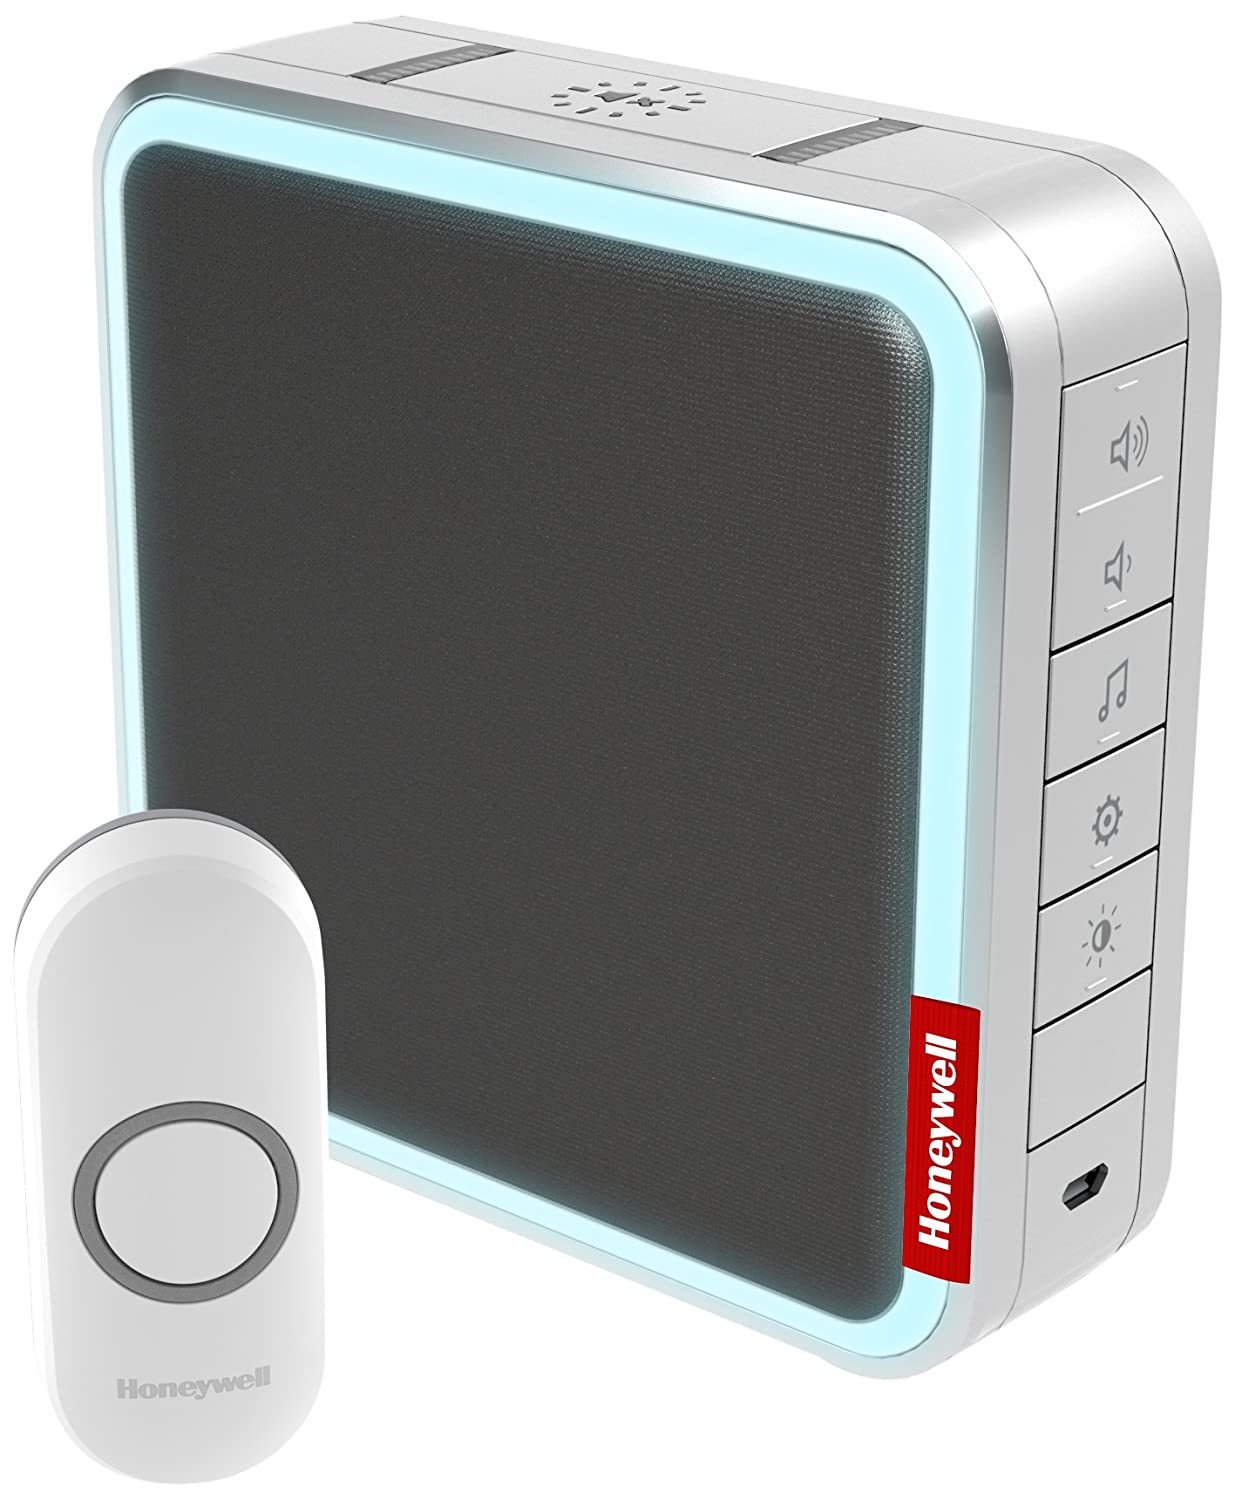 Honeywell DC917NG 9 Series Wireless 200 Meter MP3 Doorbell with Halo ...